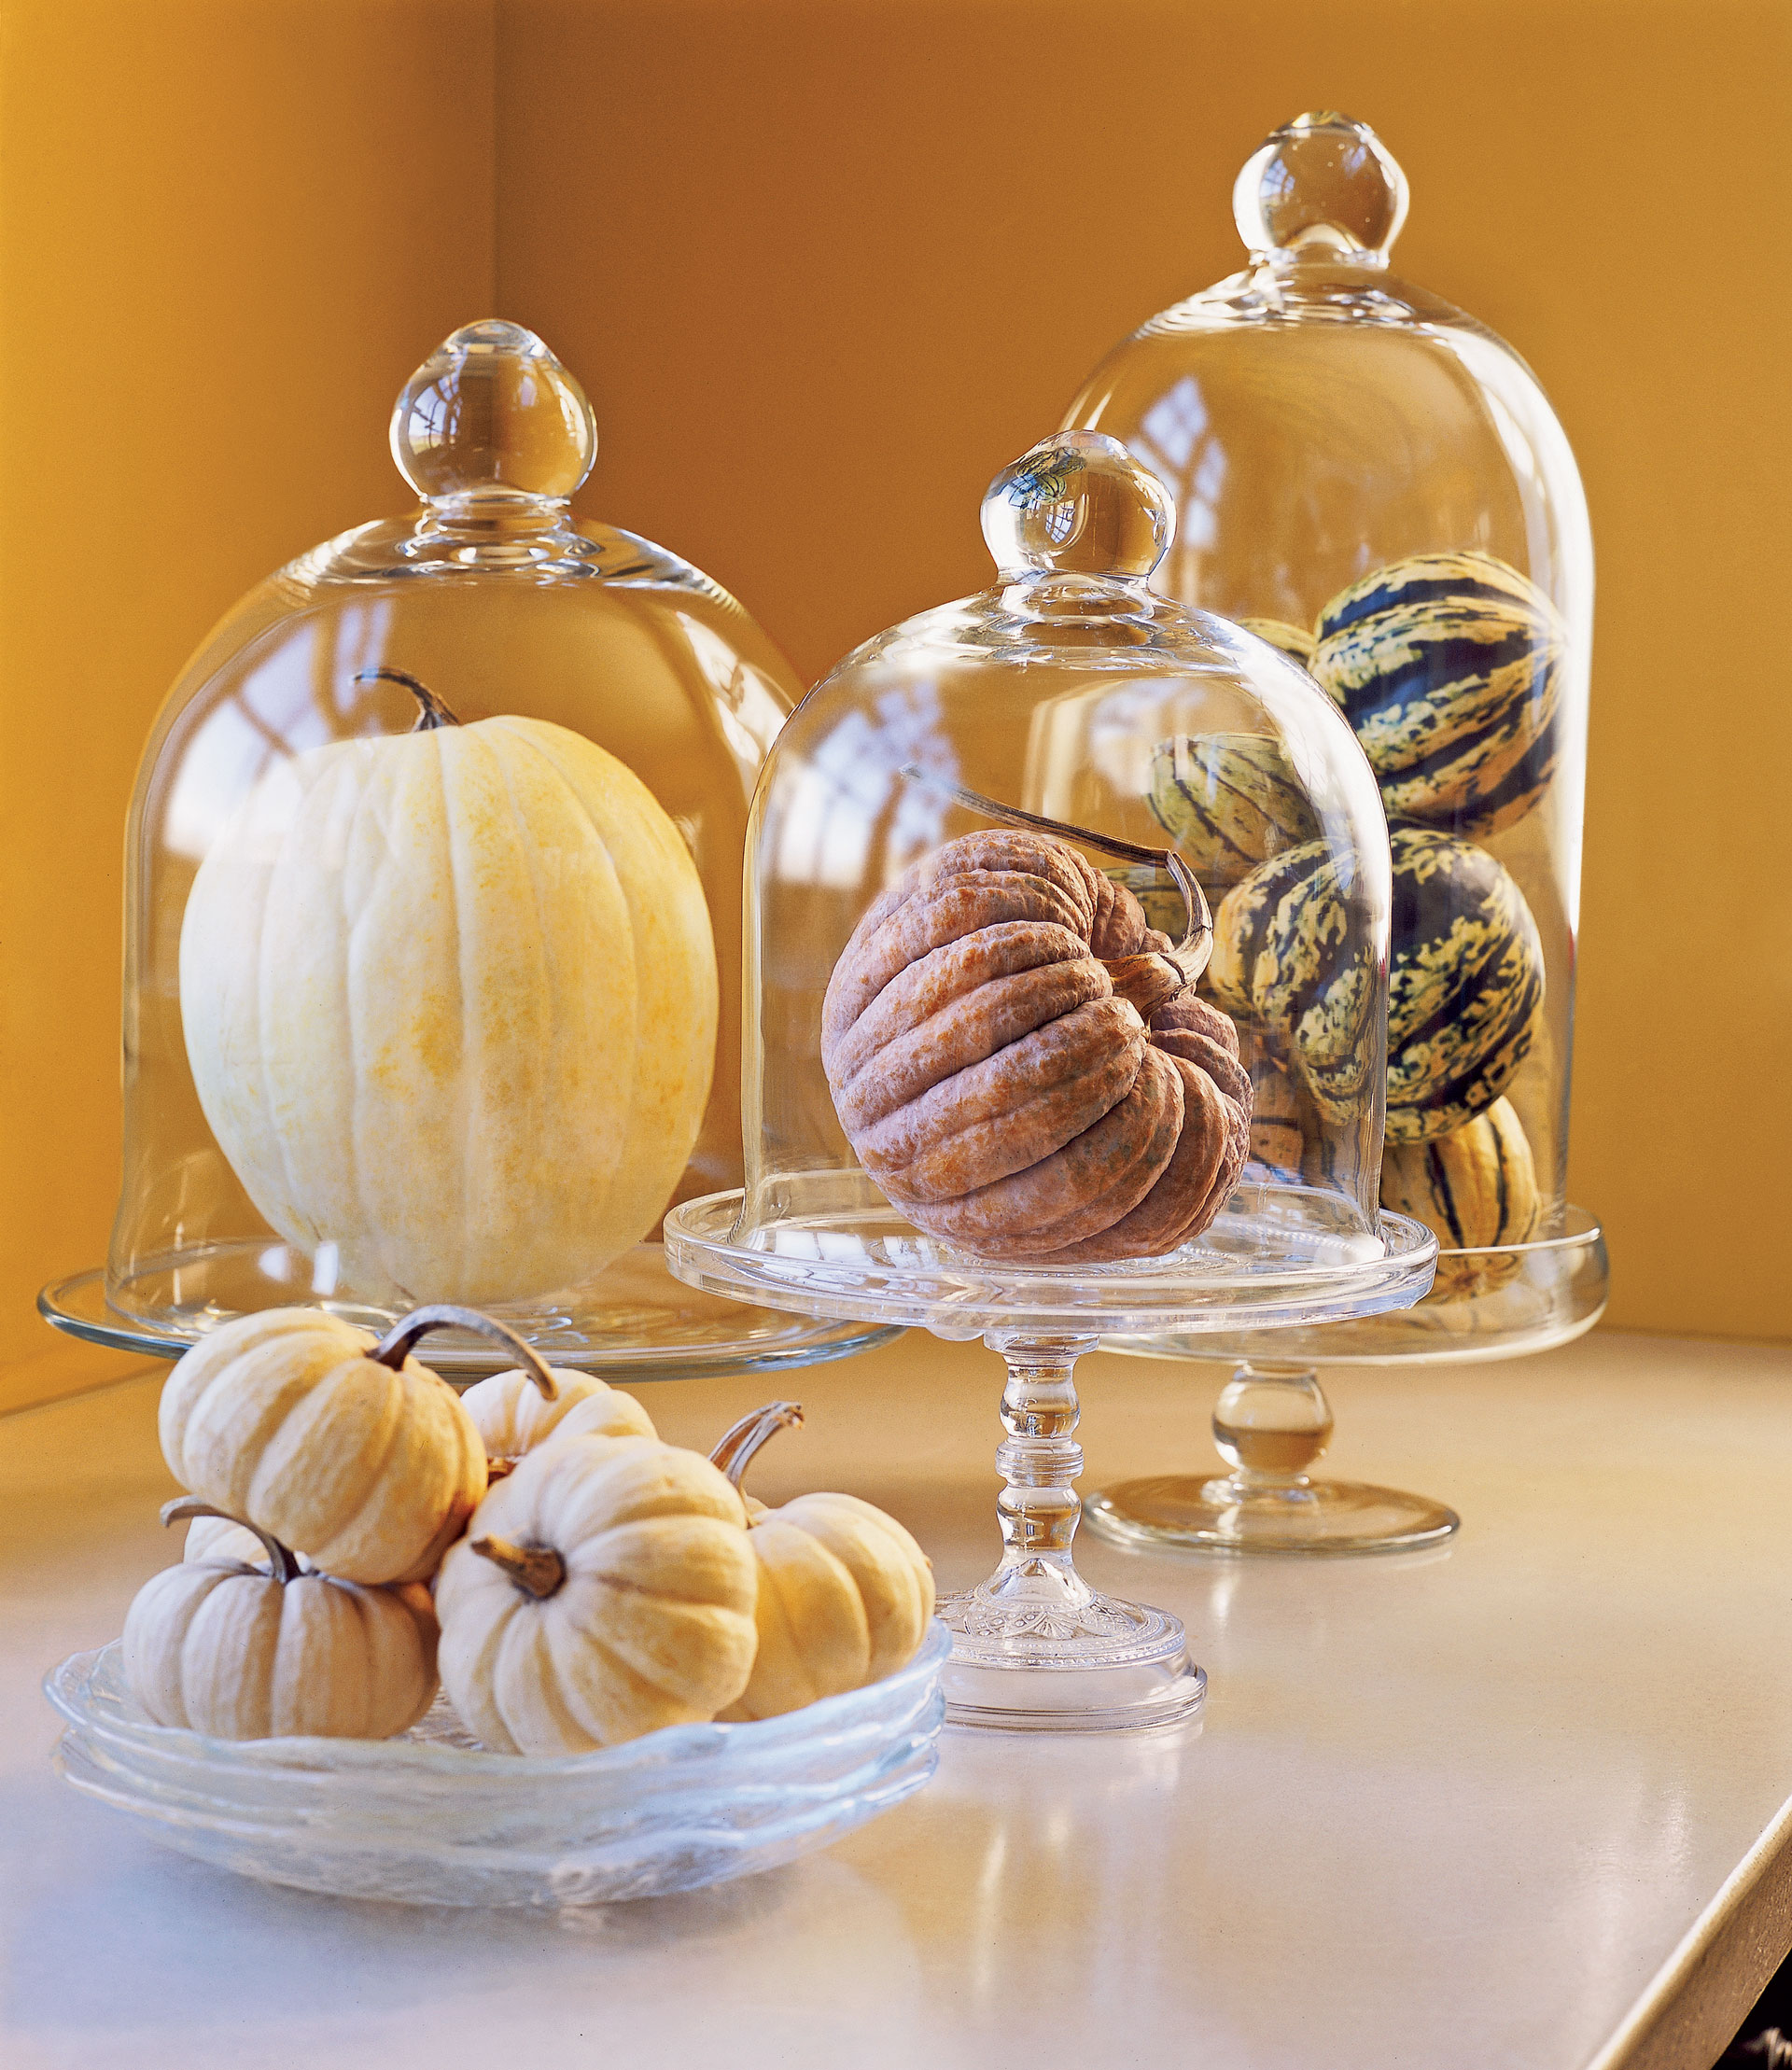 47 easy fall decorating ideas autumn decor tips to try - Pumpkin Decor